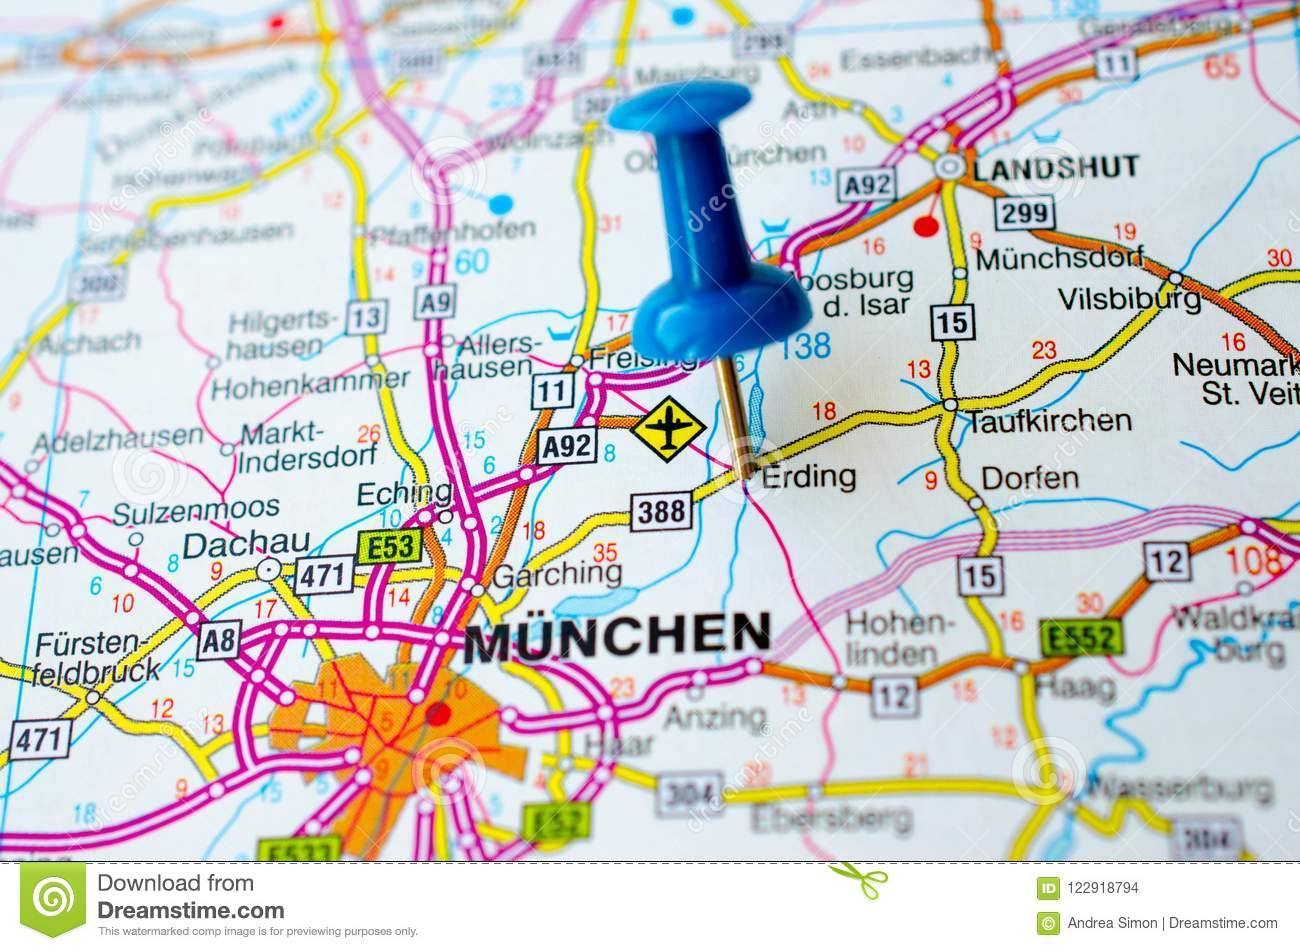 Munich on map stock photo. Image of state, maps, munich - 122918794